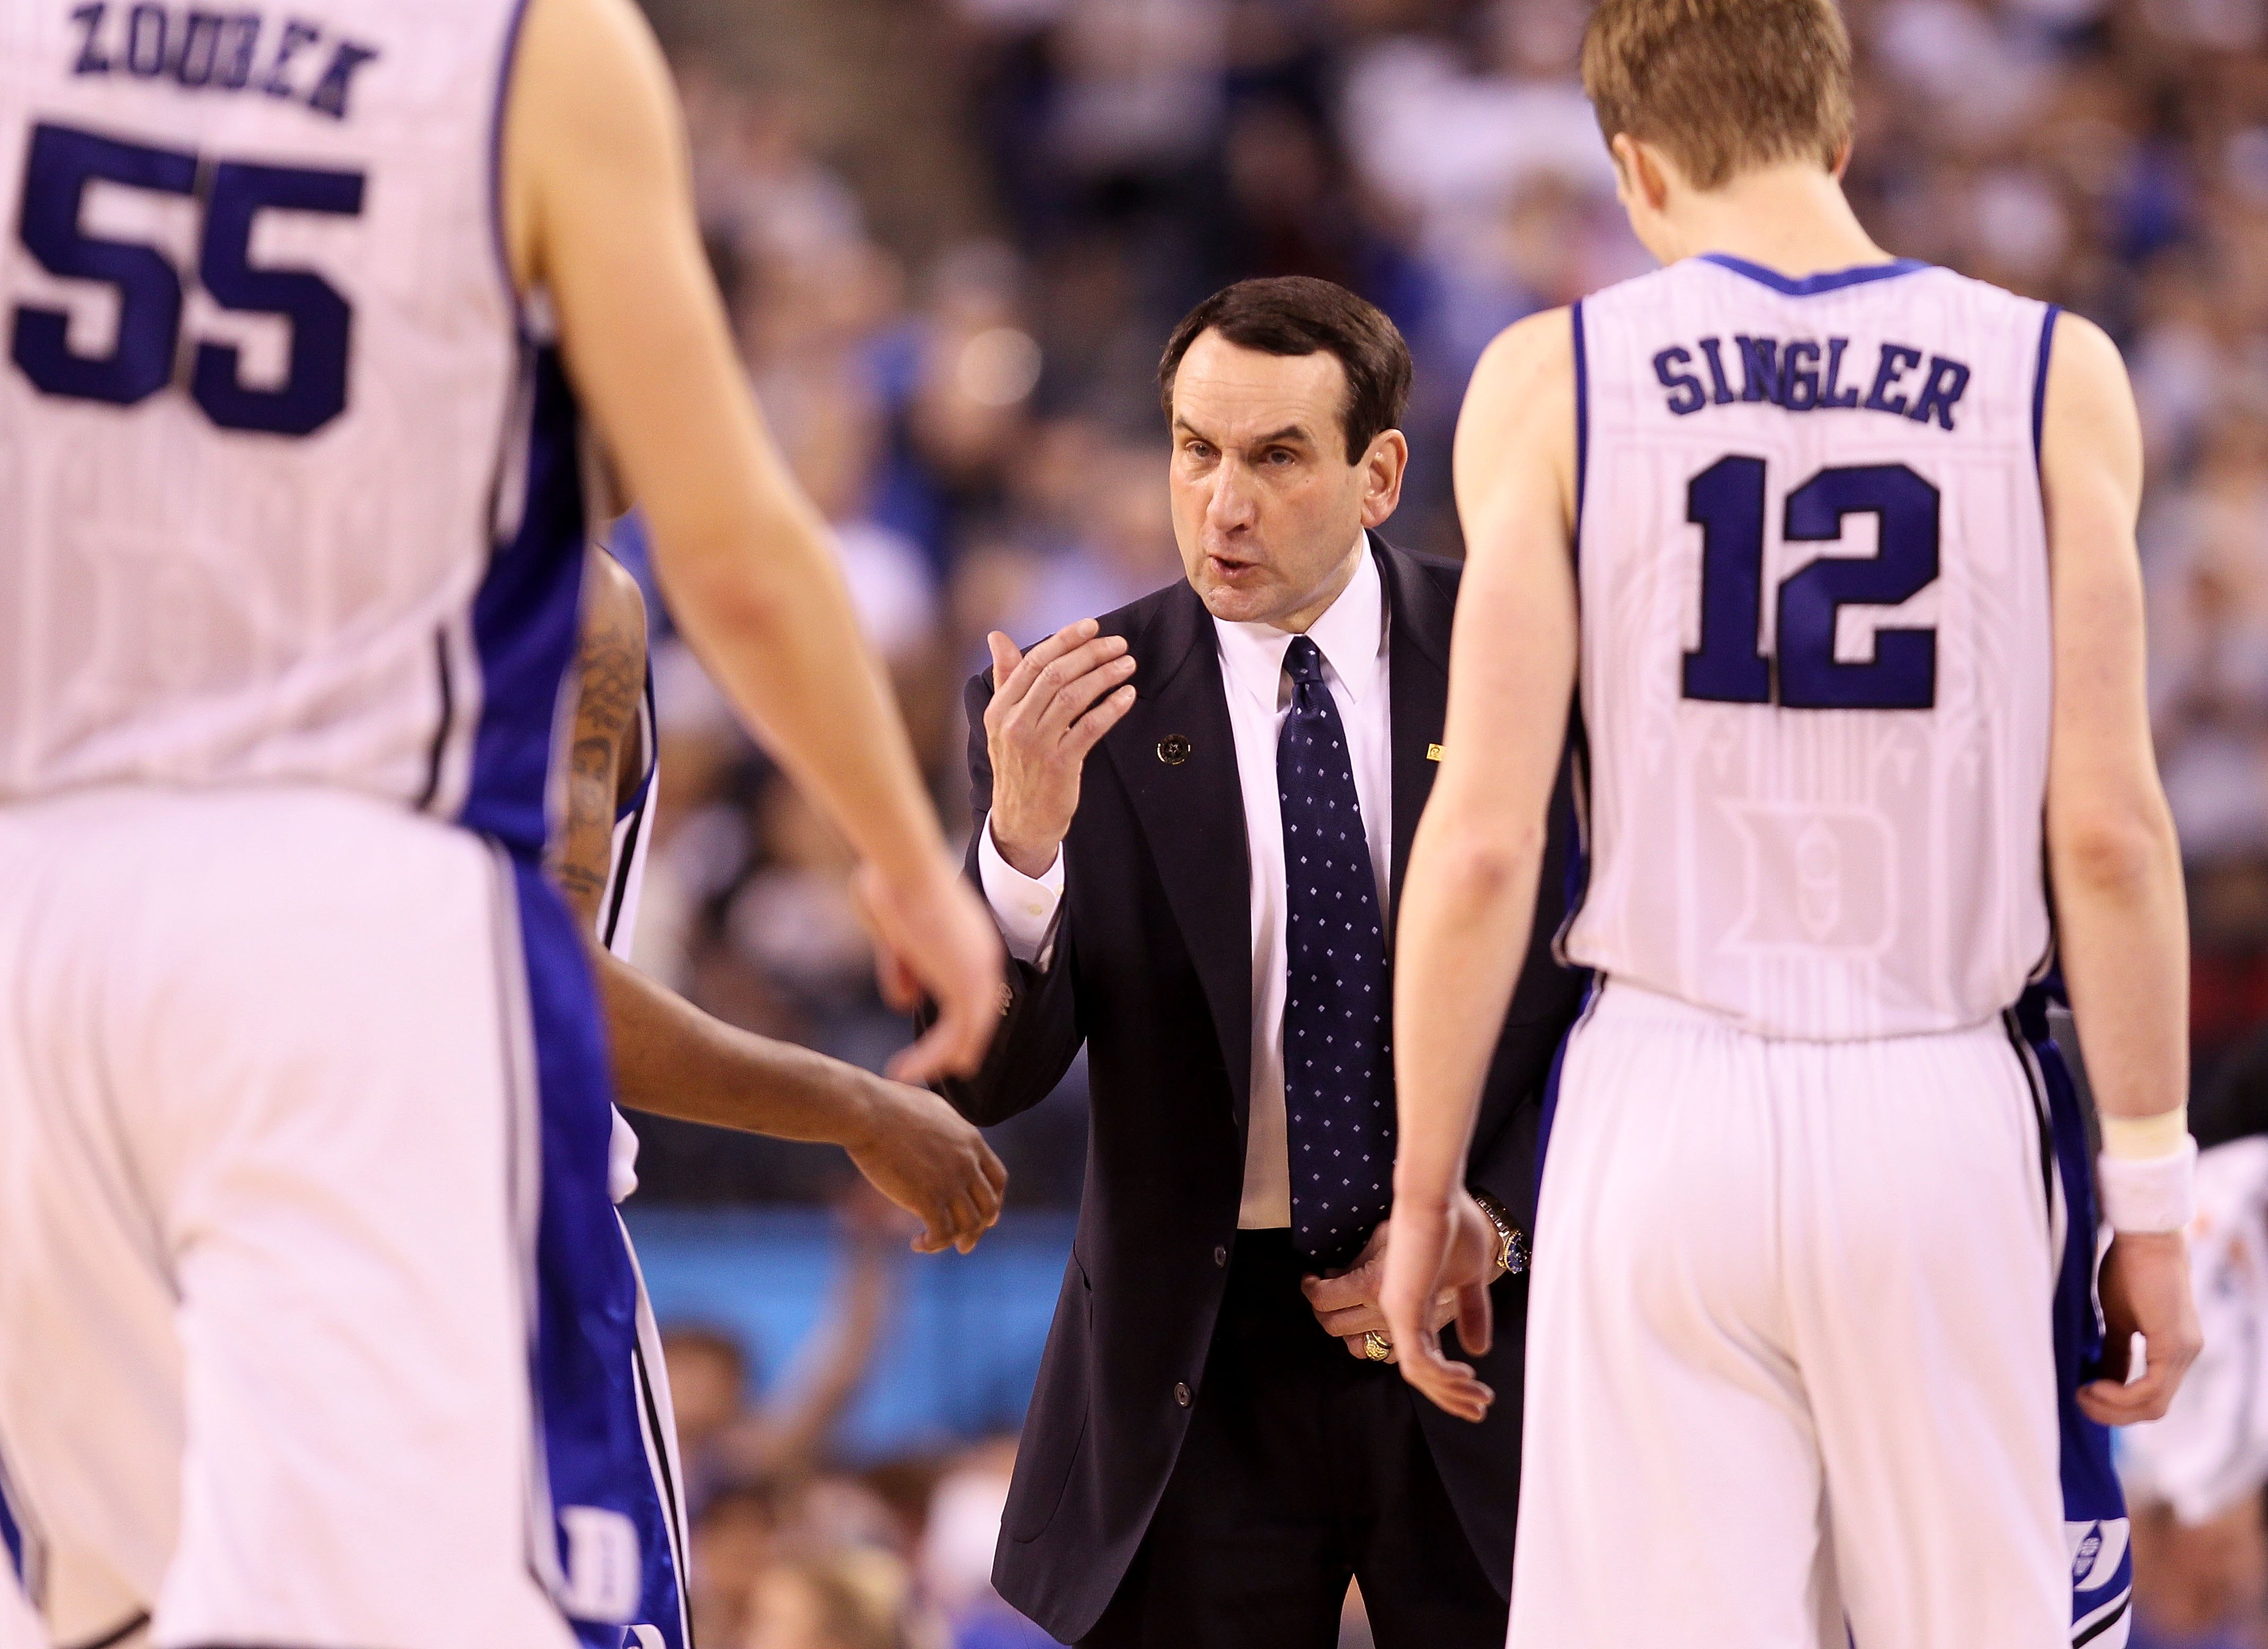 INDIANAPOLIS - APRIL 05:  Head coach Mike Krzyzewski of the Duke Blue Devils gestures towards his players at a timeout against the Butler Bulldogs during the 2010 NCAA Division I Men's Basketball National Championship game at Lucas Oil Stadium on April 5,